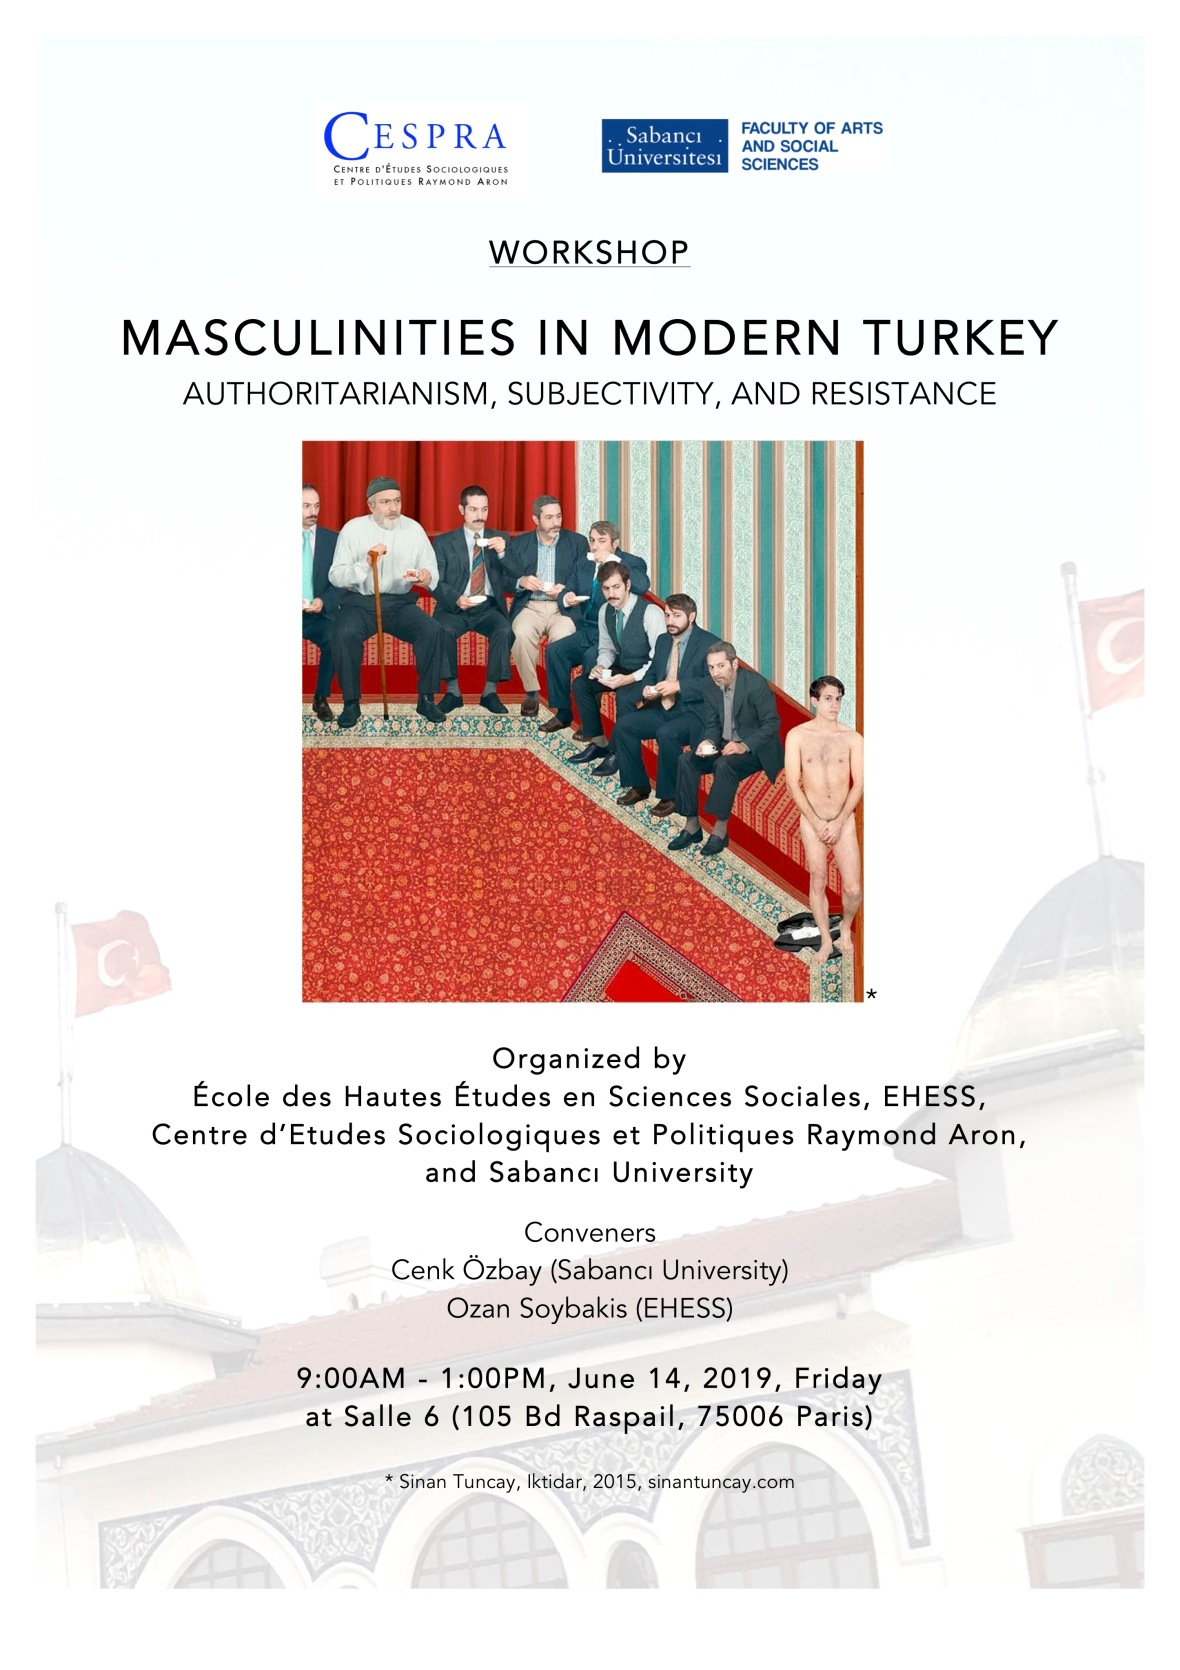 masculinities in modern turkey.jpg